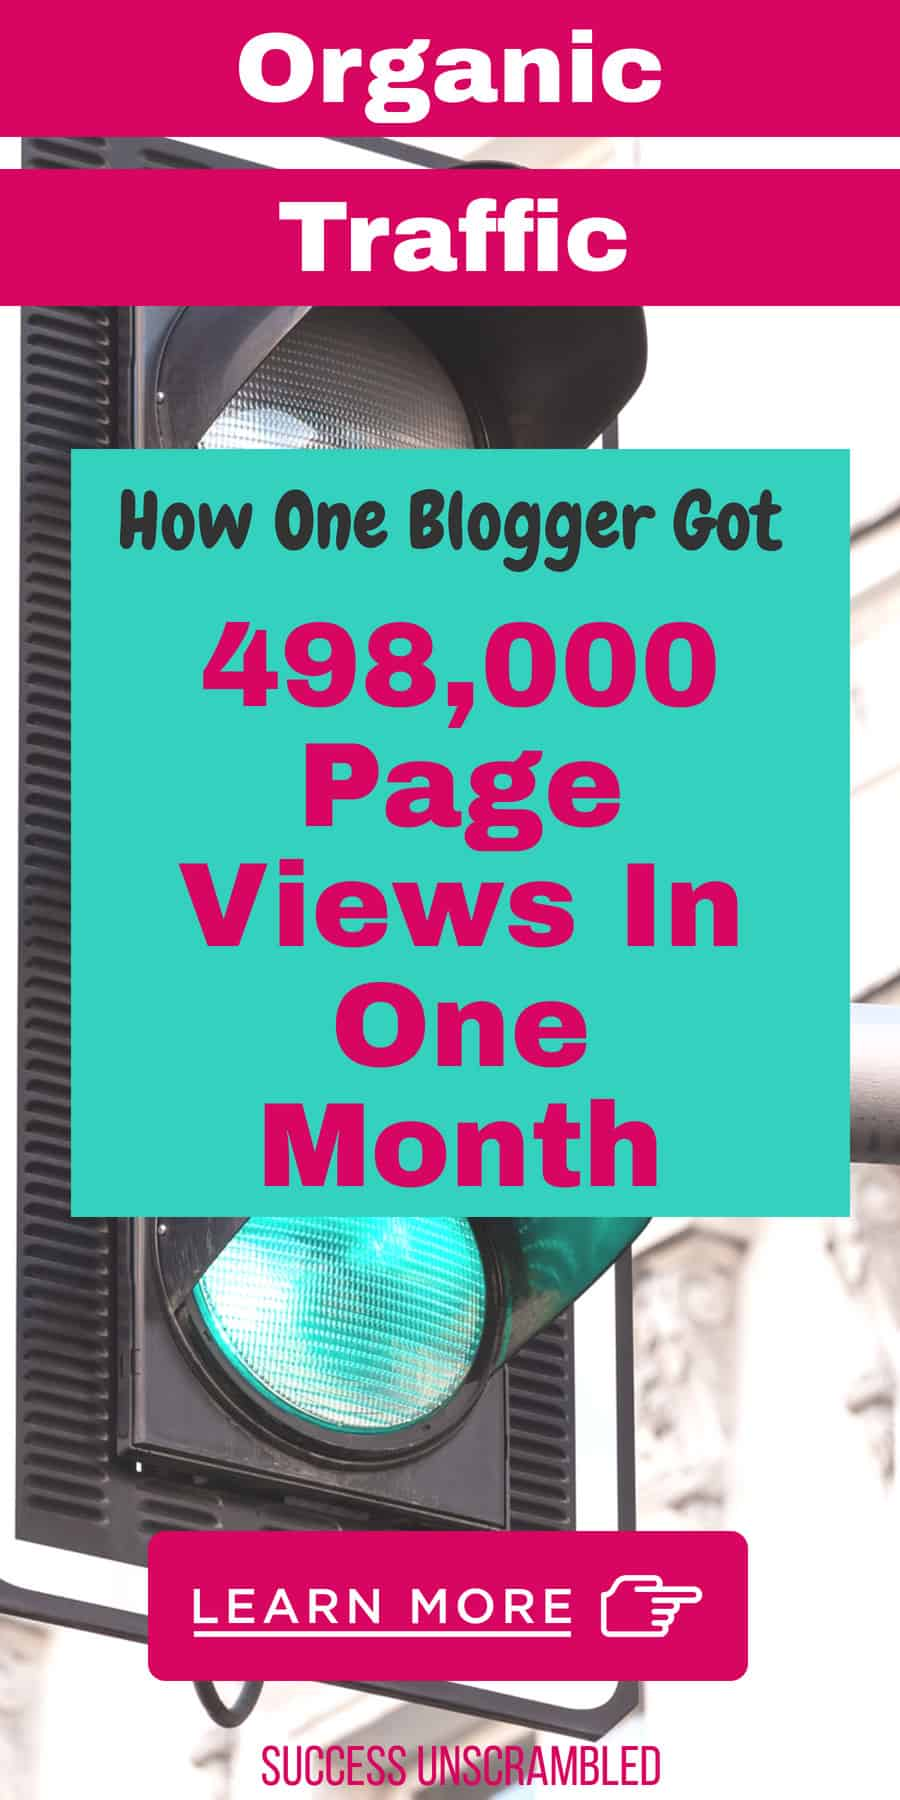 How one blogger got 498,000 page views - organic traffic